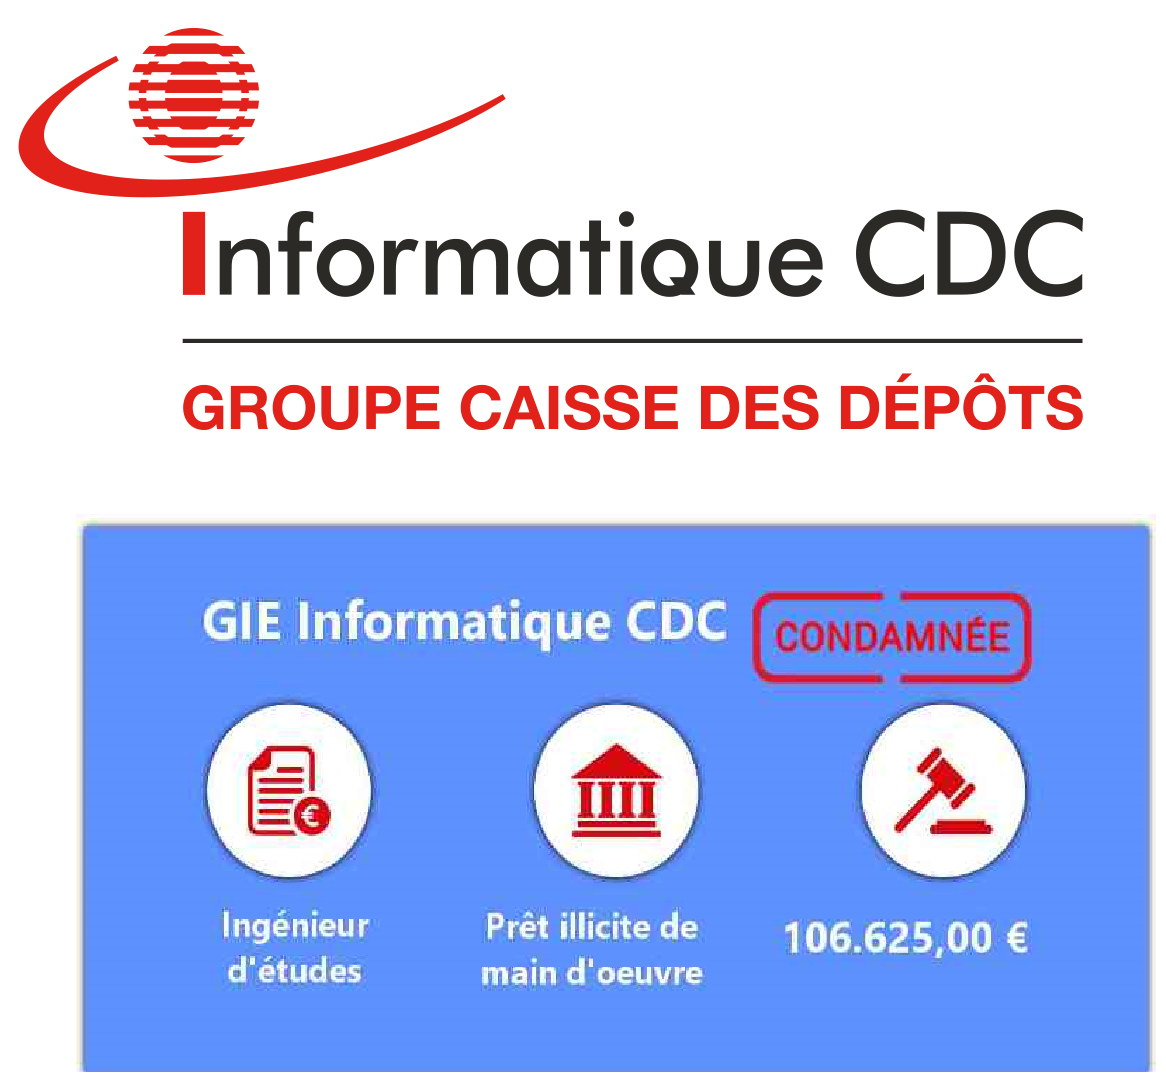 Informatique CDC